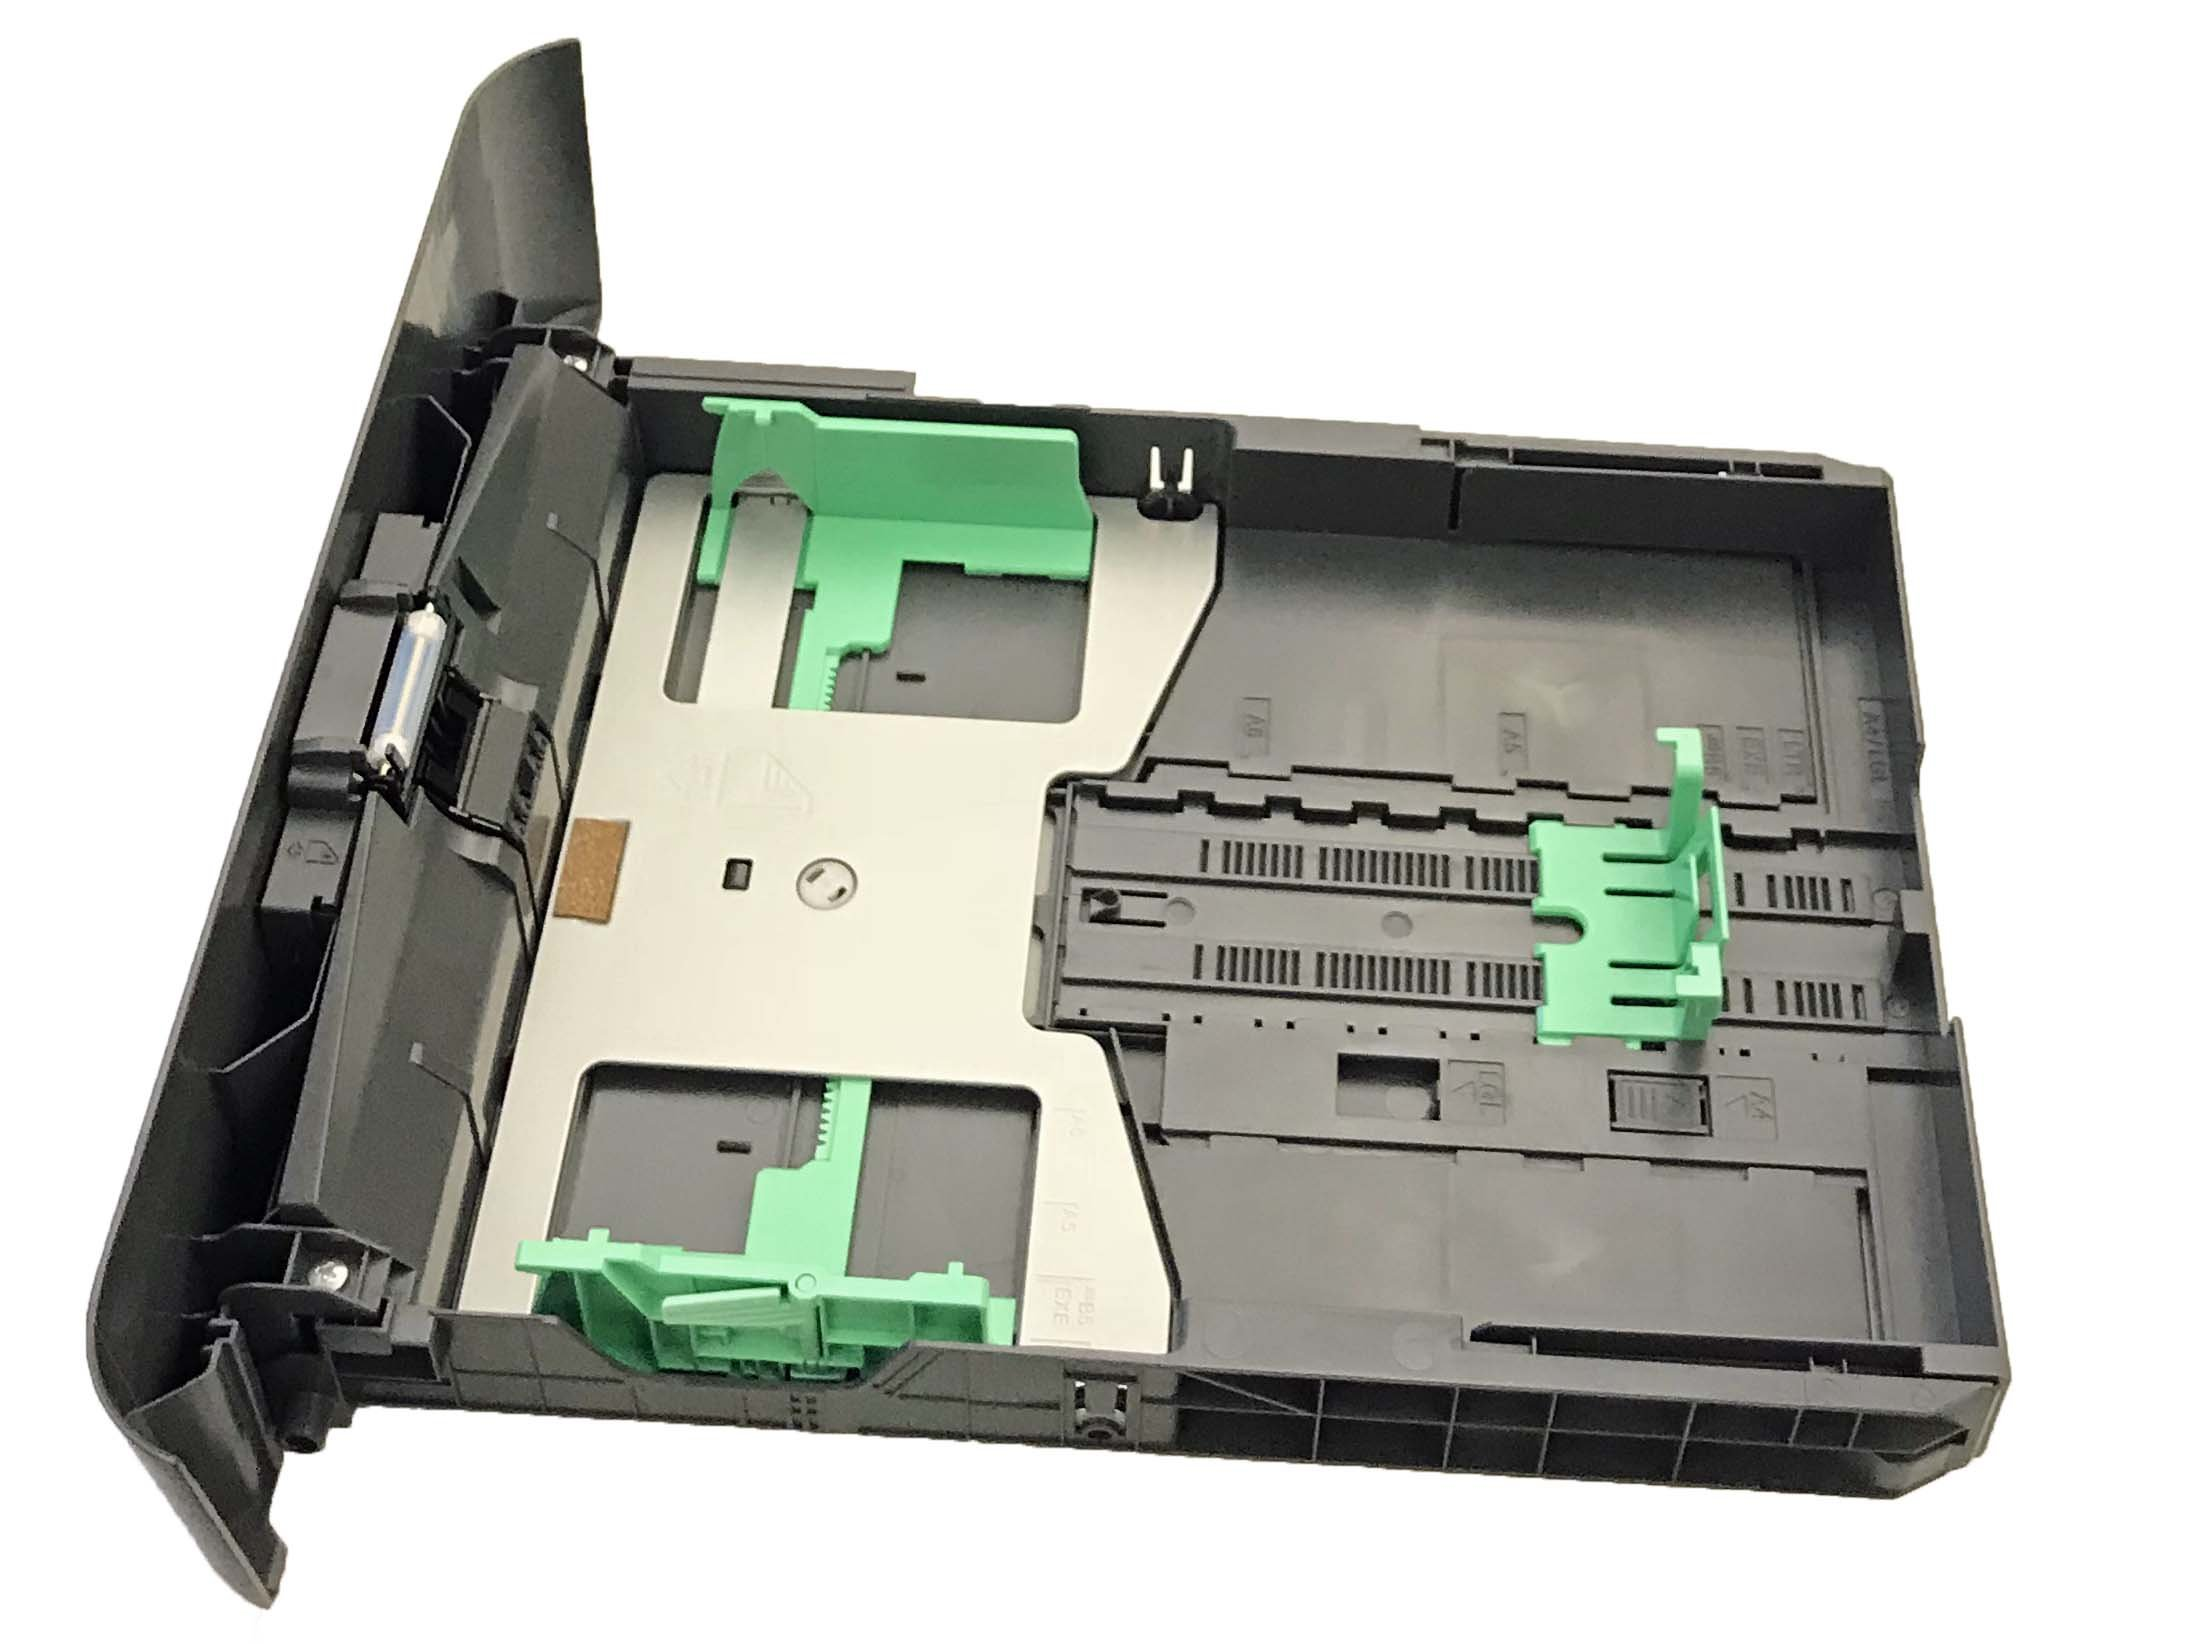 OEM Brother 250 Page Paper Cassette Tray for MFC-L2720DW, MFCL2720DW, MFC-L2740DW, MFCL2740DW